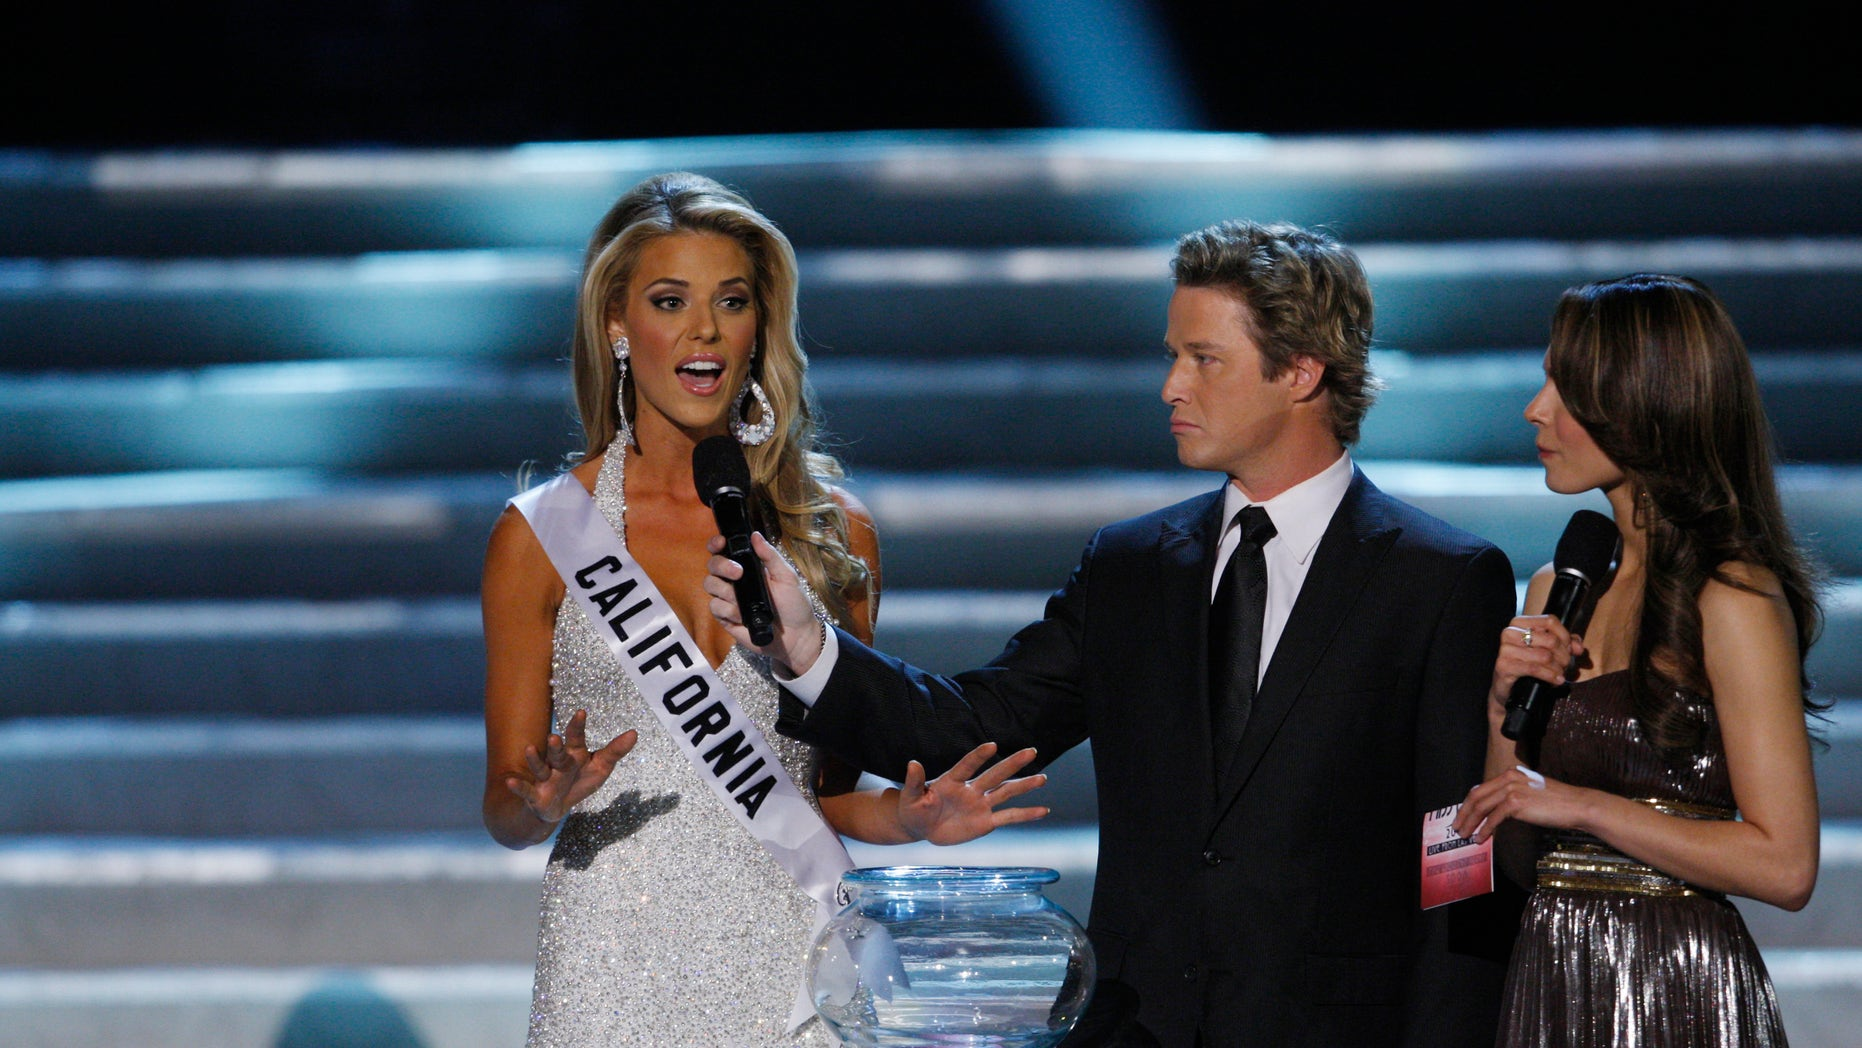 Miss California Carrie Prejean responds to a question about gay marriage